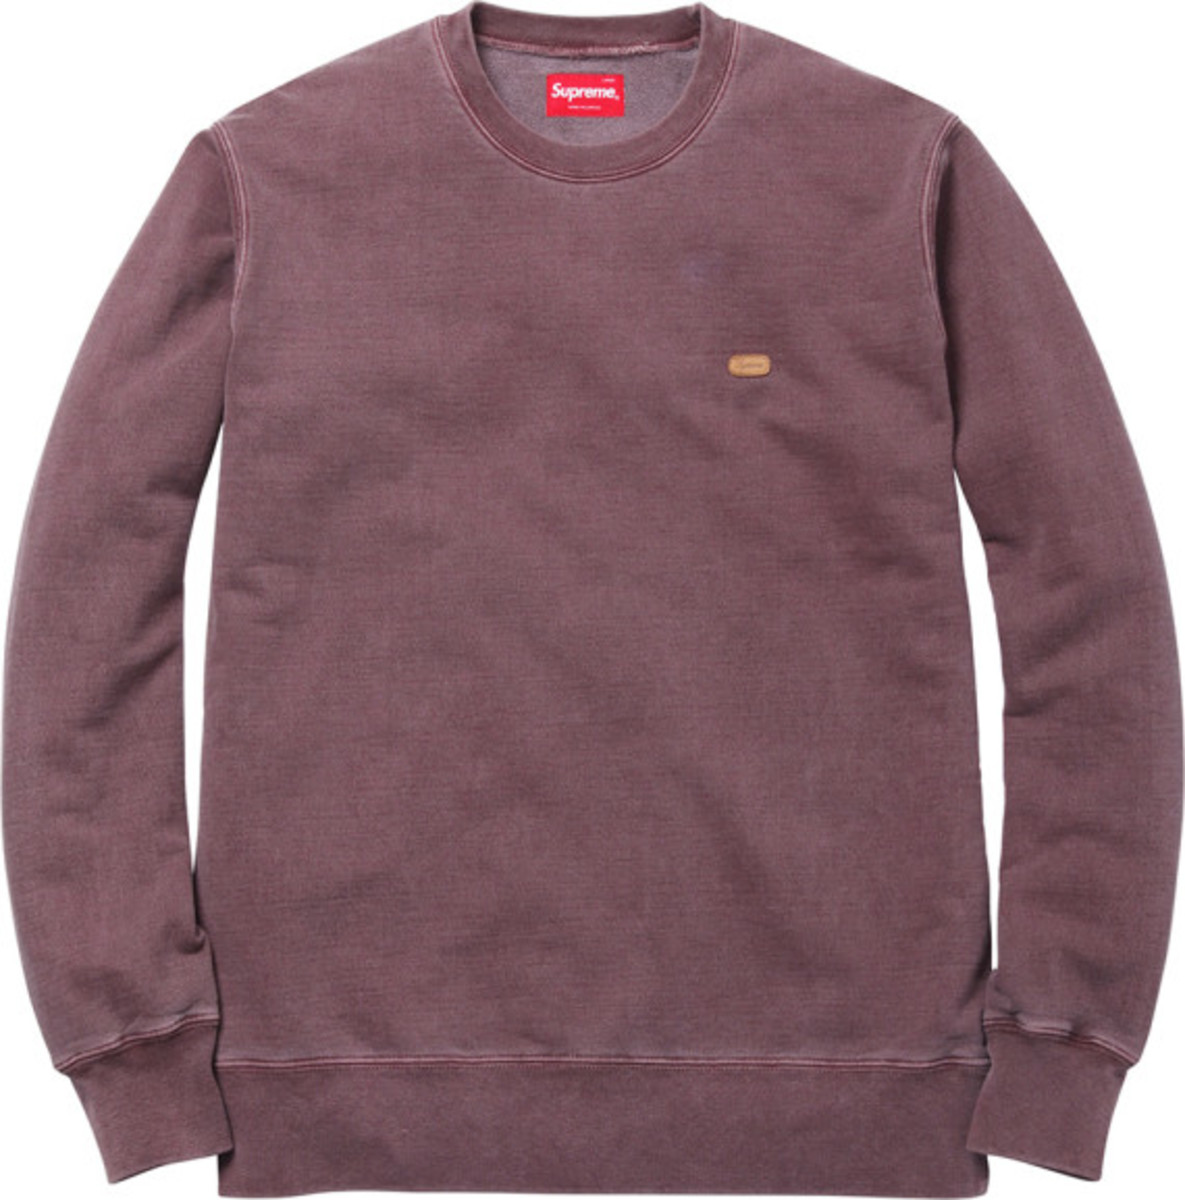 supreme-fall-winter-2014-apparel-collection-57